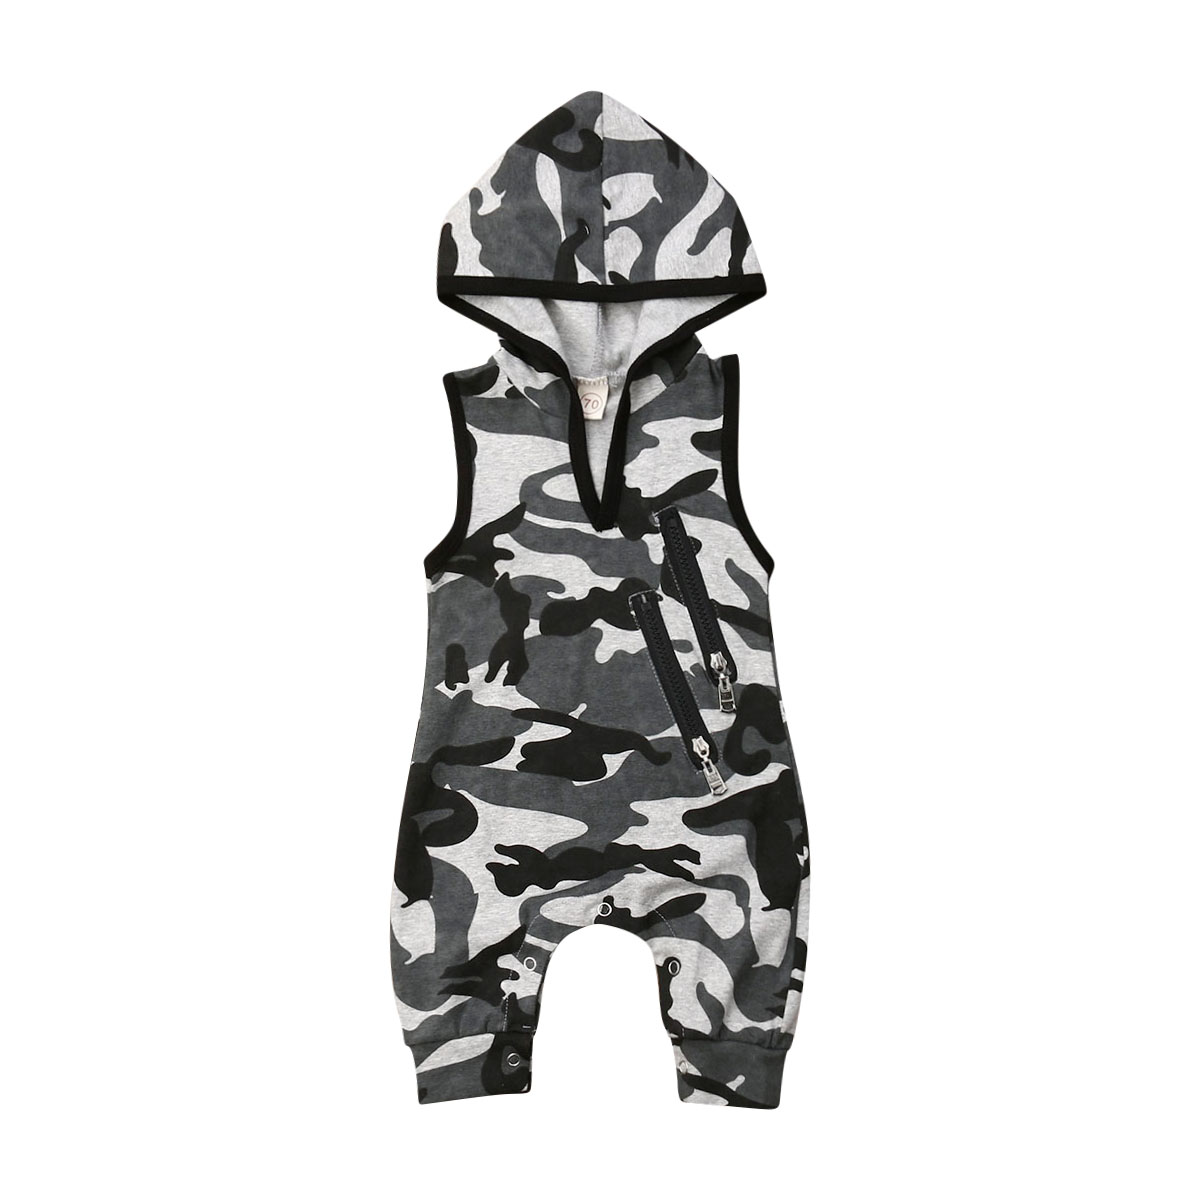 Pudcoco Newborn Toddler Baby Boys Hooded Camo Romper Jumpsuit Outfits 2020 Baby Clothes 0-24M